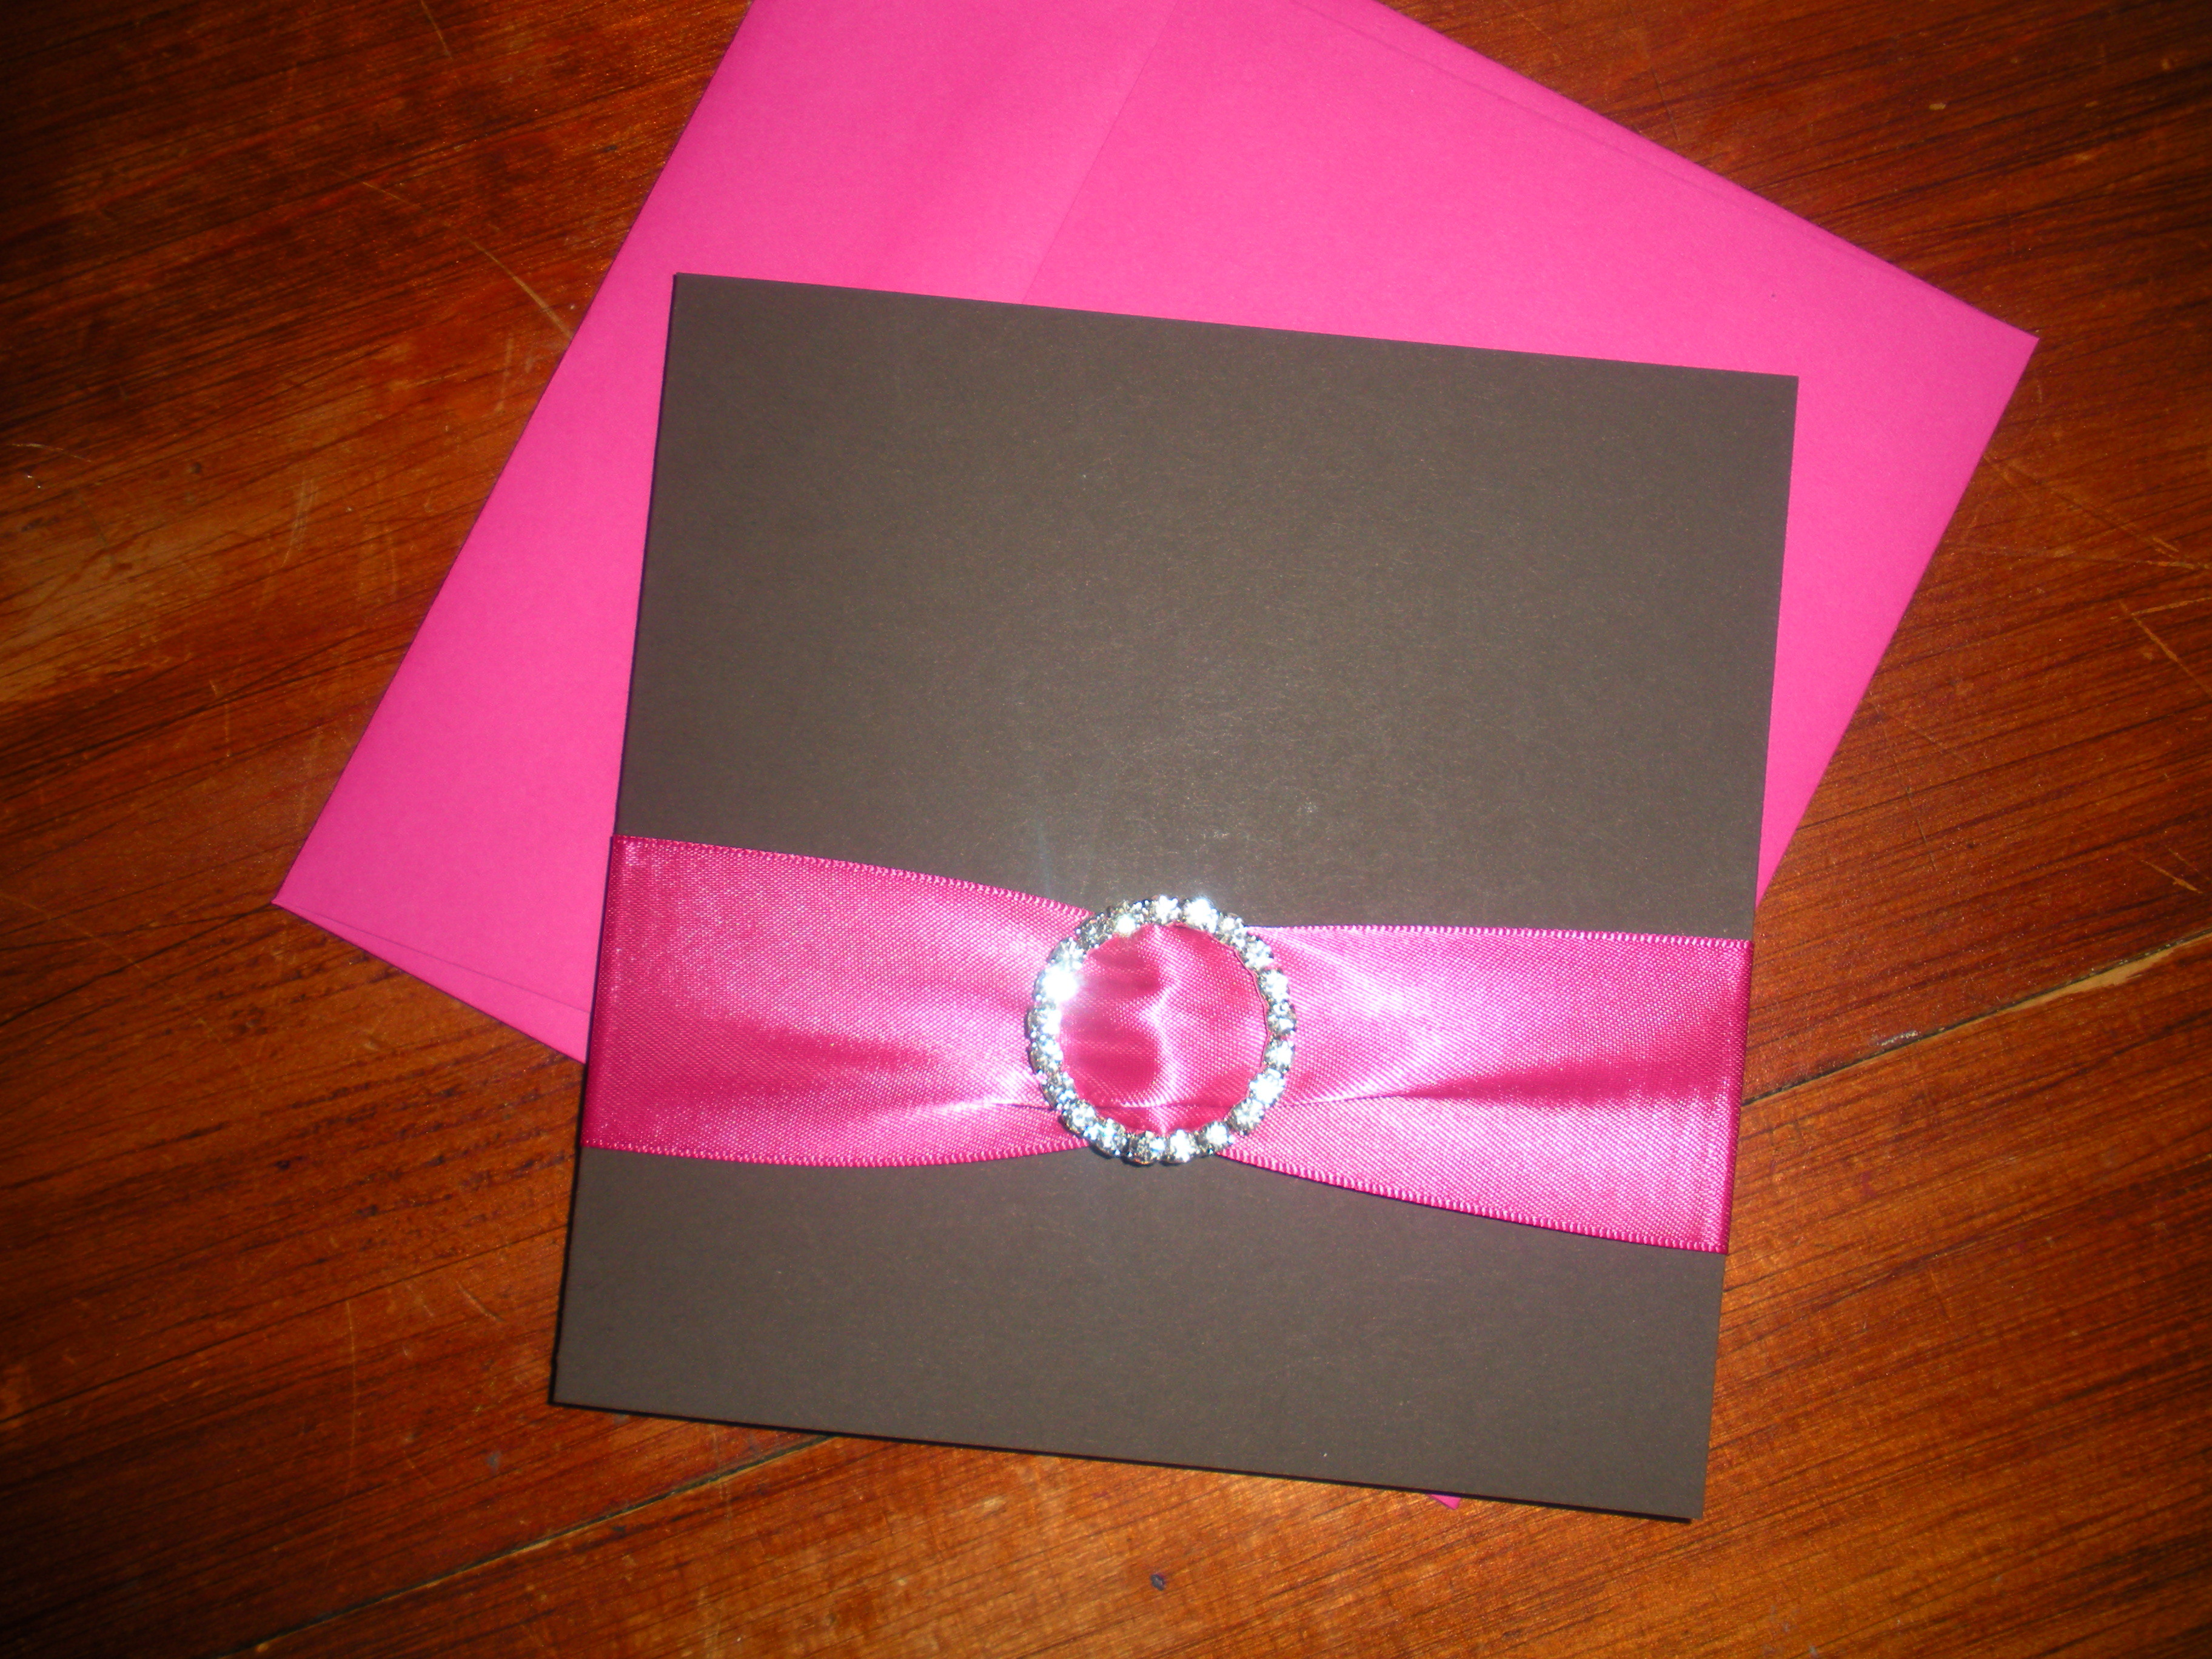 Stationery, invitation, Invitations, Pocketfold, Rhinestone, Buckle, Brandy nicole weddings